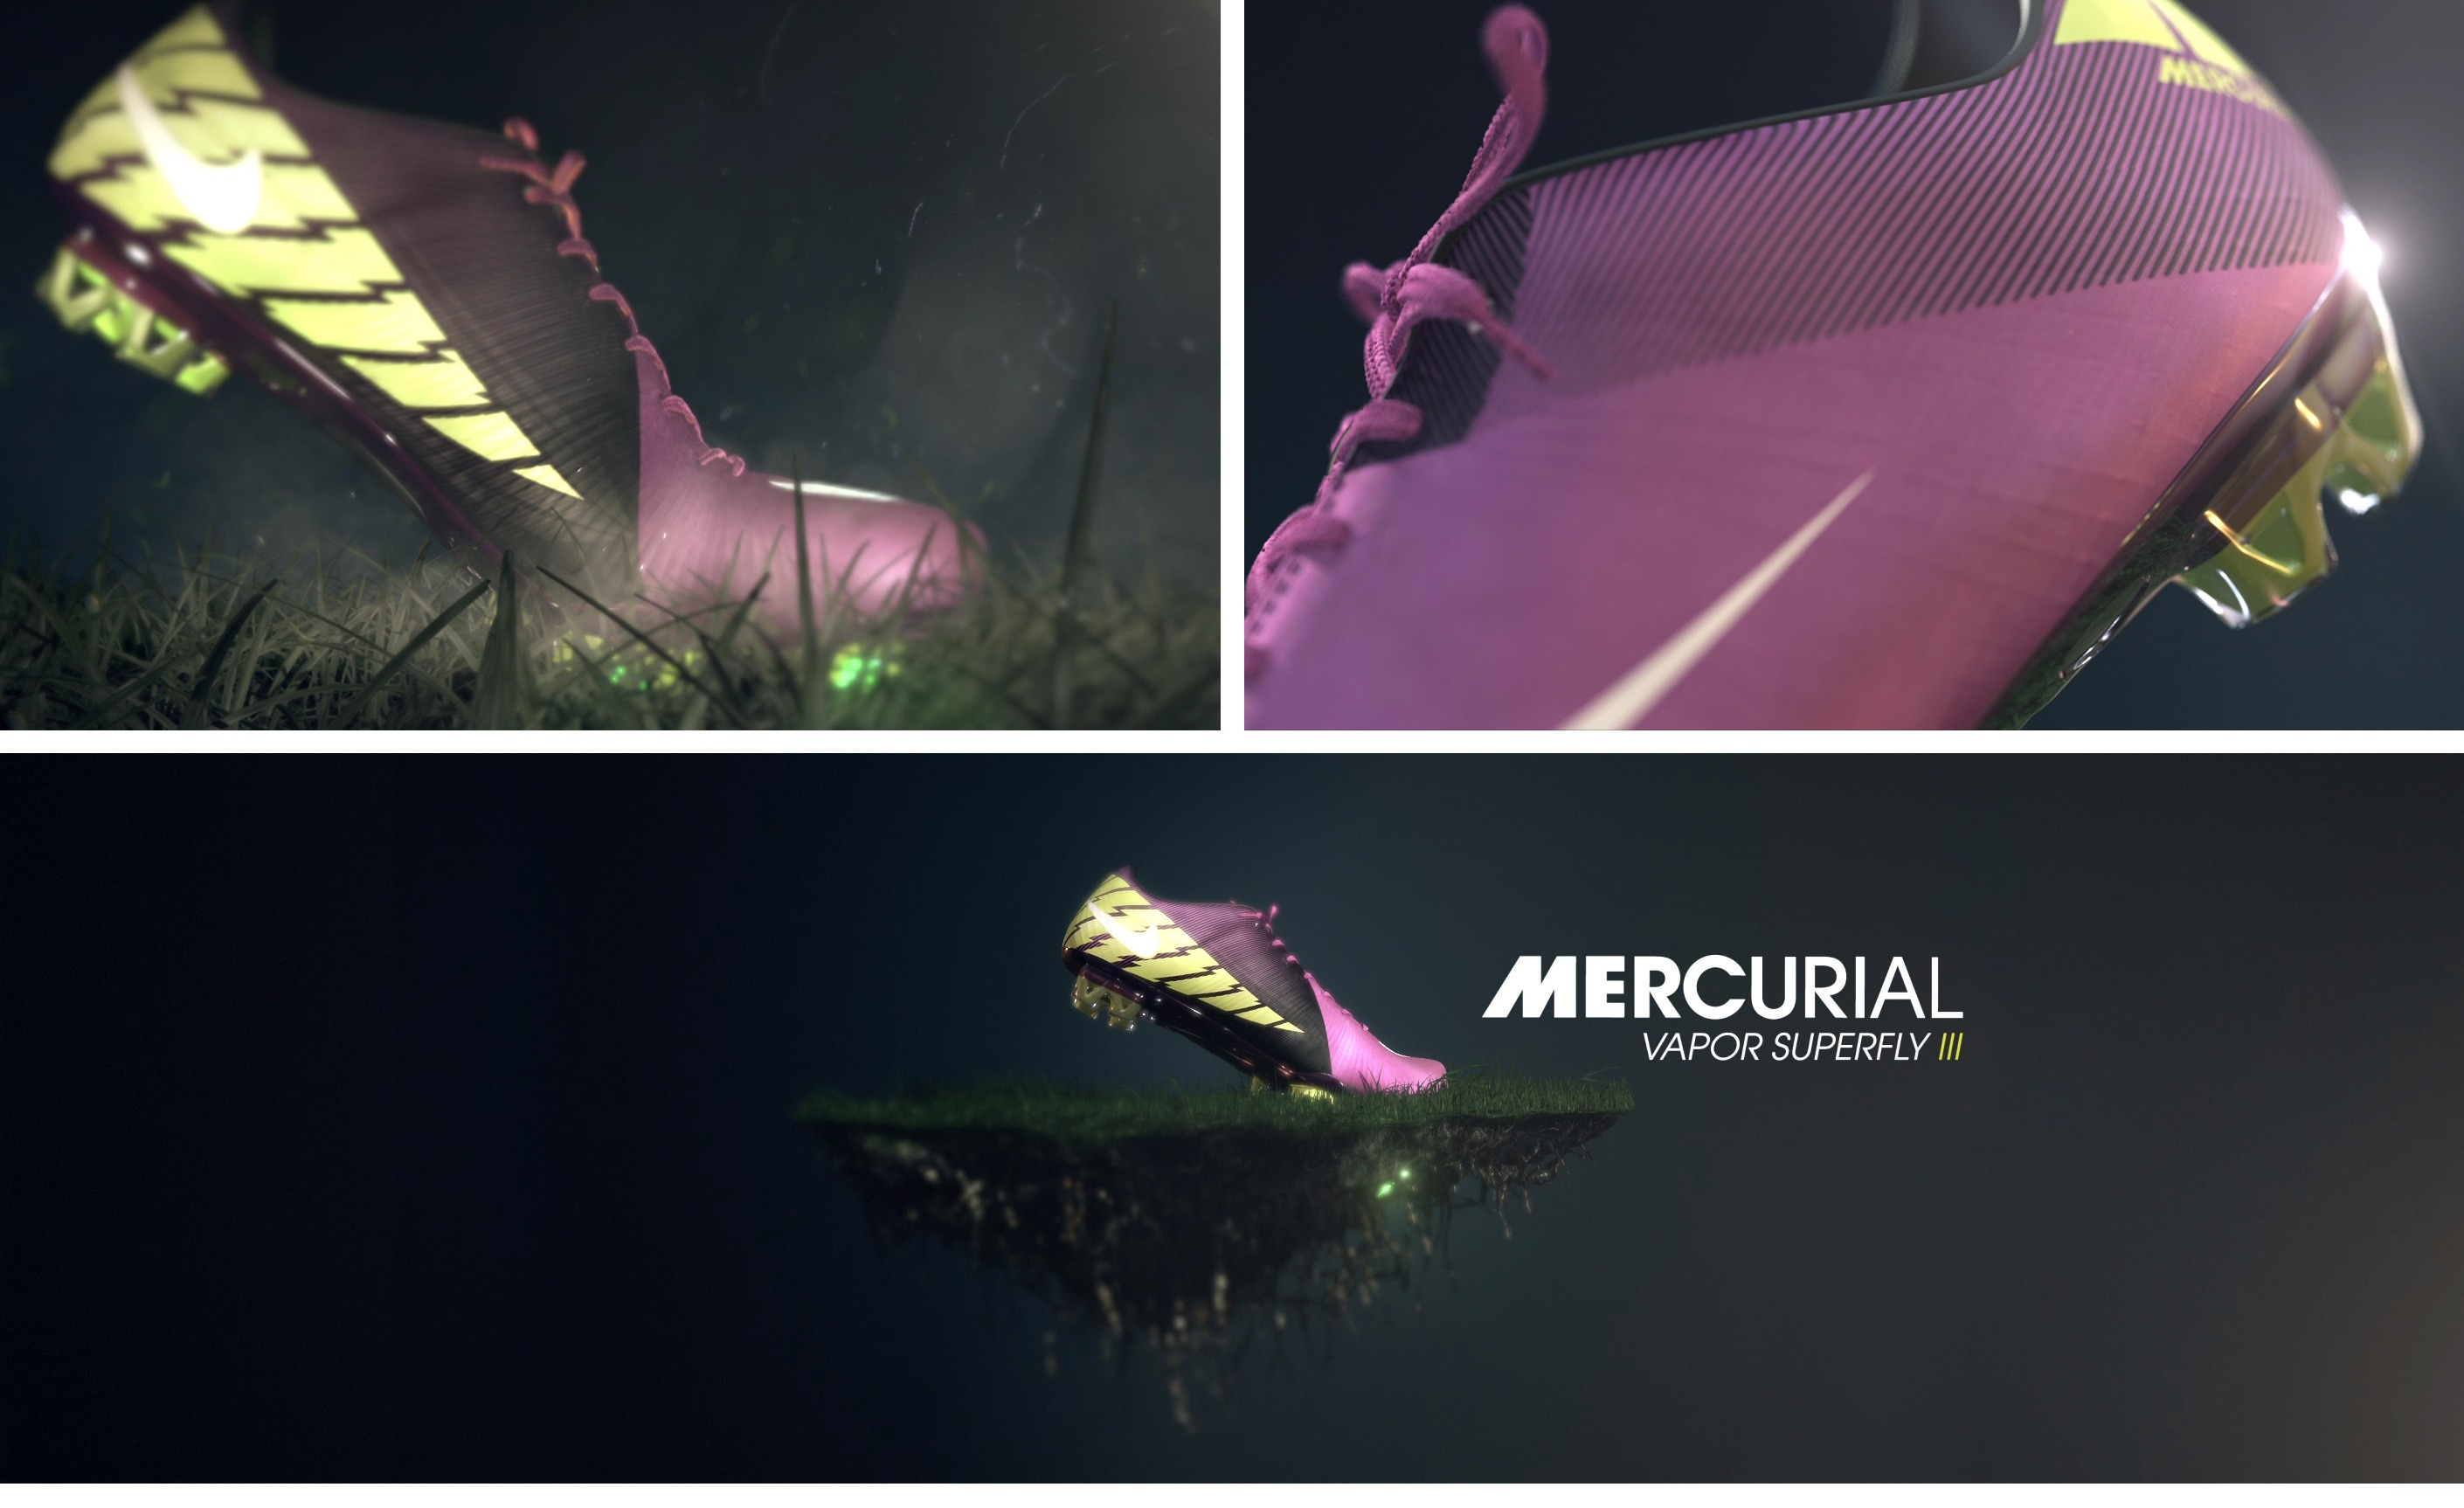 stas3dart-nike-mercurial-vapor-superfly-III-promotional-tv-advertisement-animation